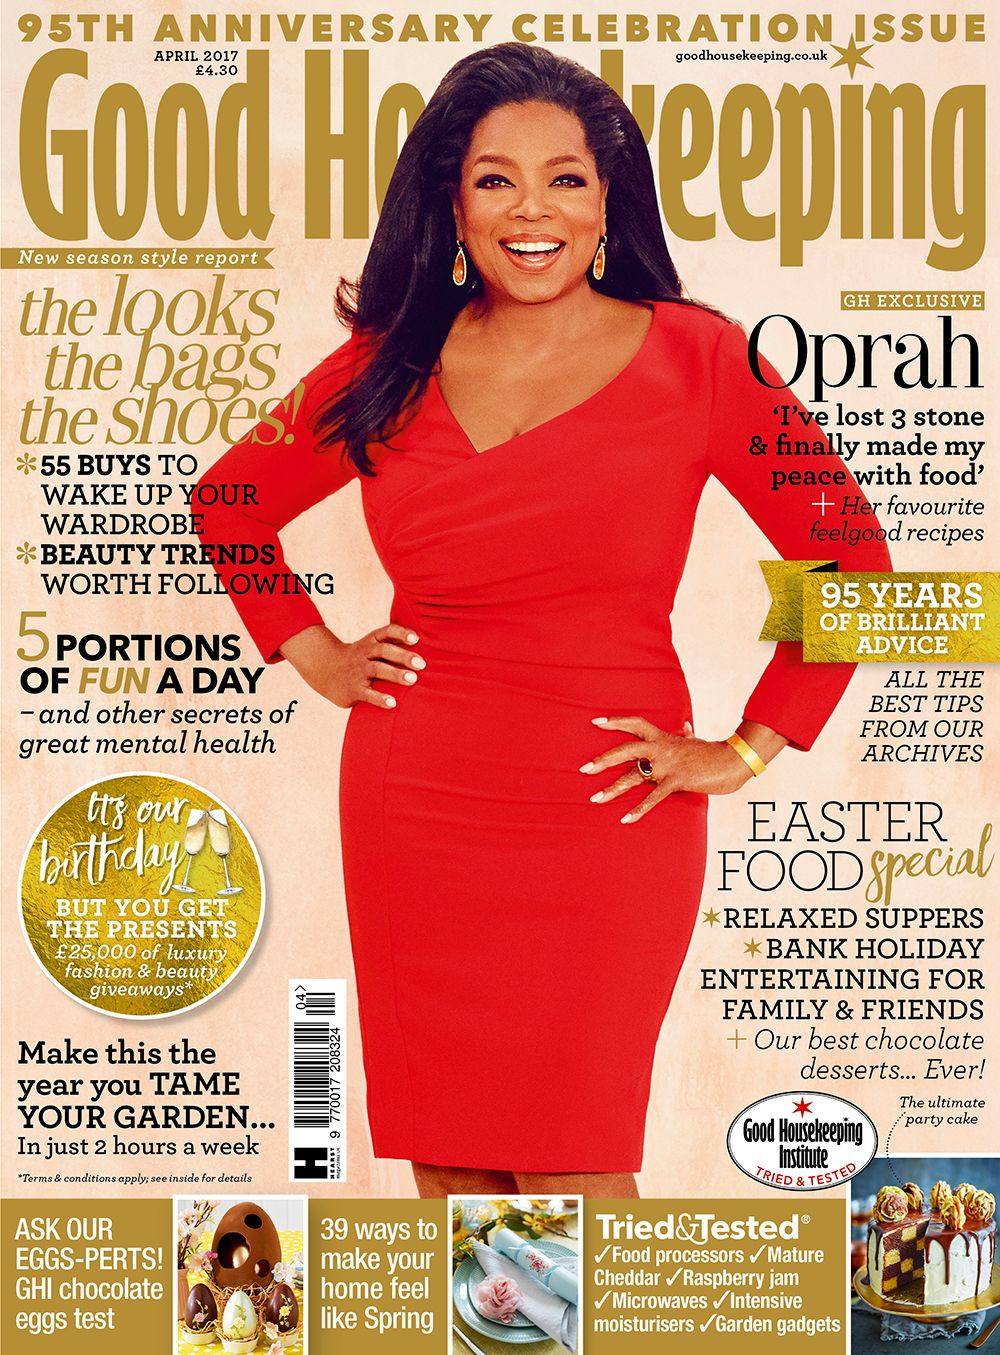 Good Housekeeping magazine, April 2017. The perfect Mother's Day gift for a Mum who needs to put her feet up! Featuring the gorgeous Oprah Winfrey.